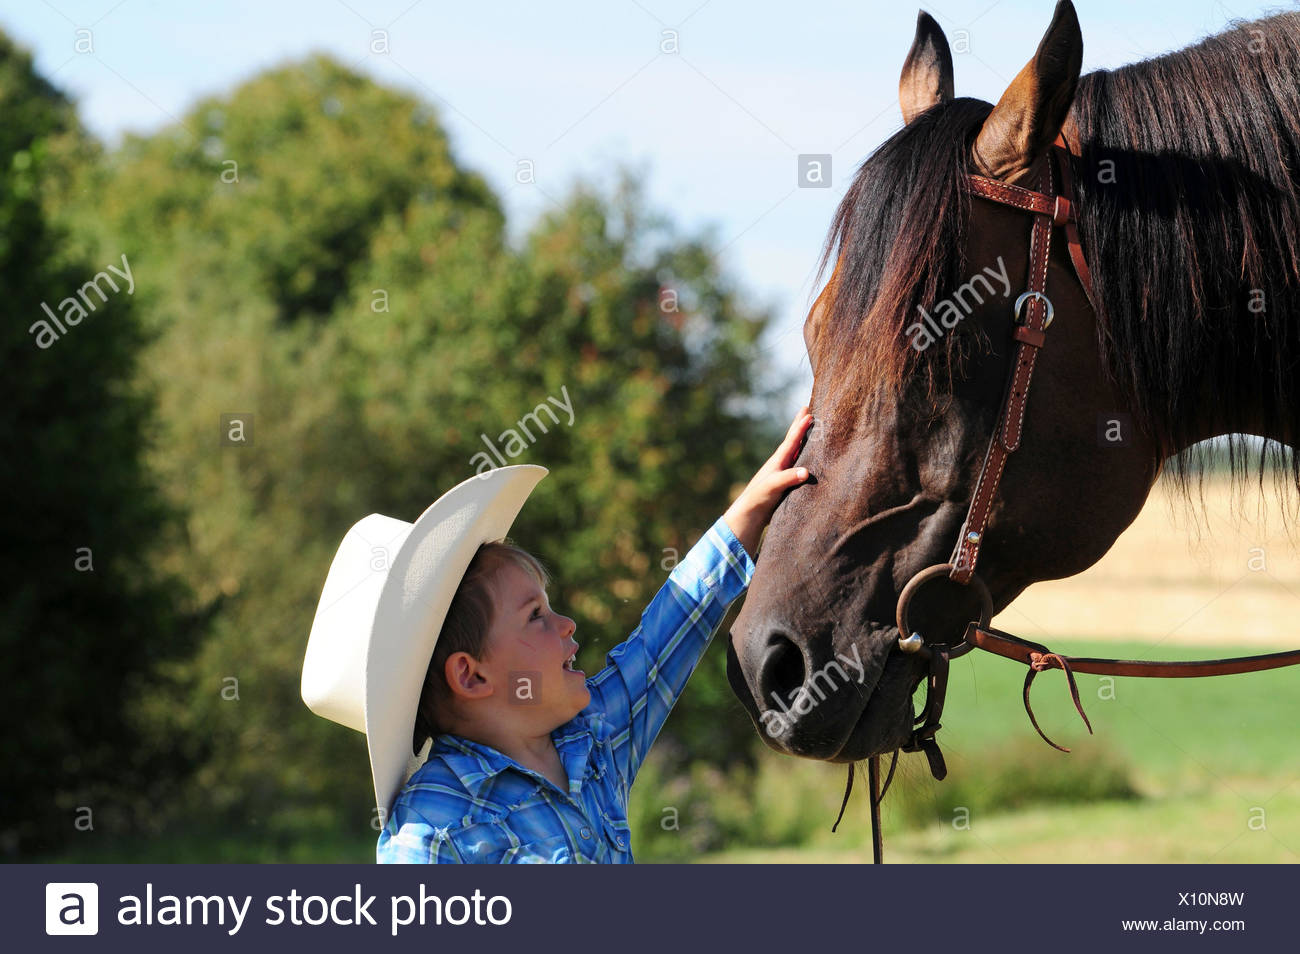 Toddler With Quarter Horse Stallion Cowboy Outfit Bridle Stock Photo Alamy